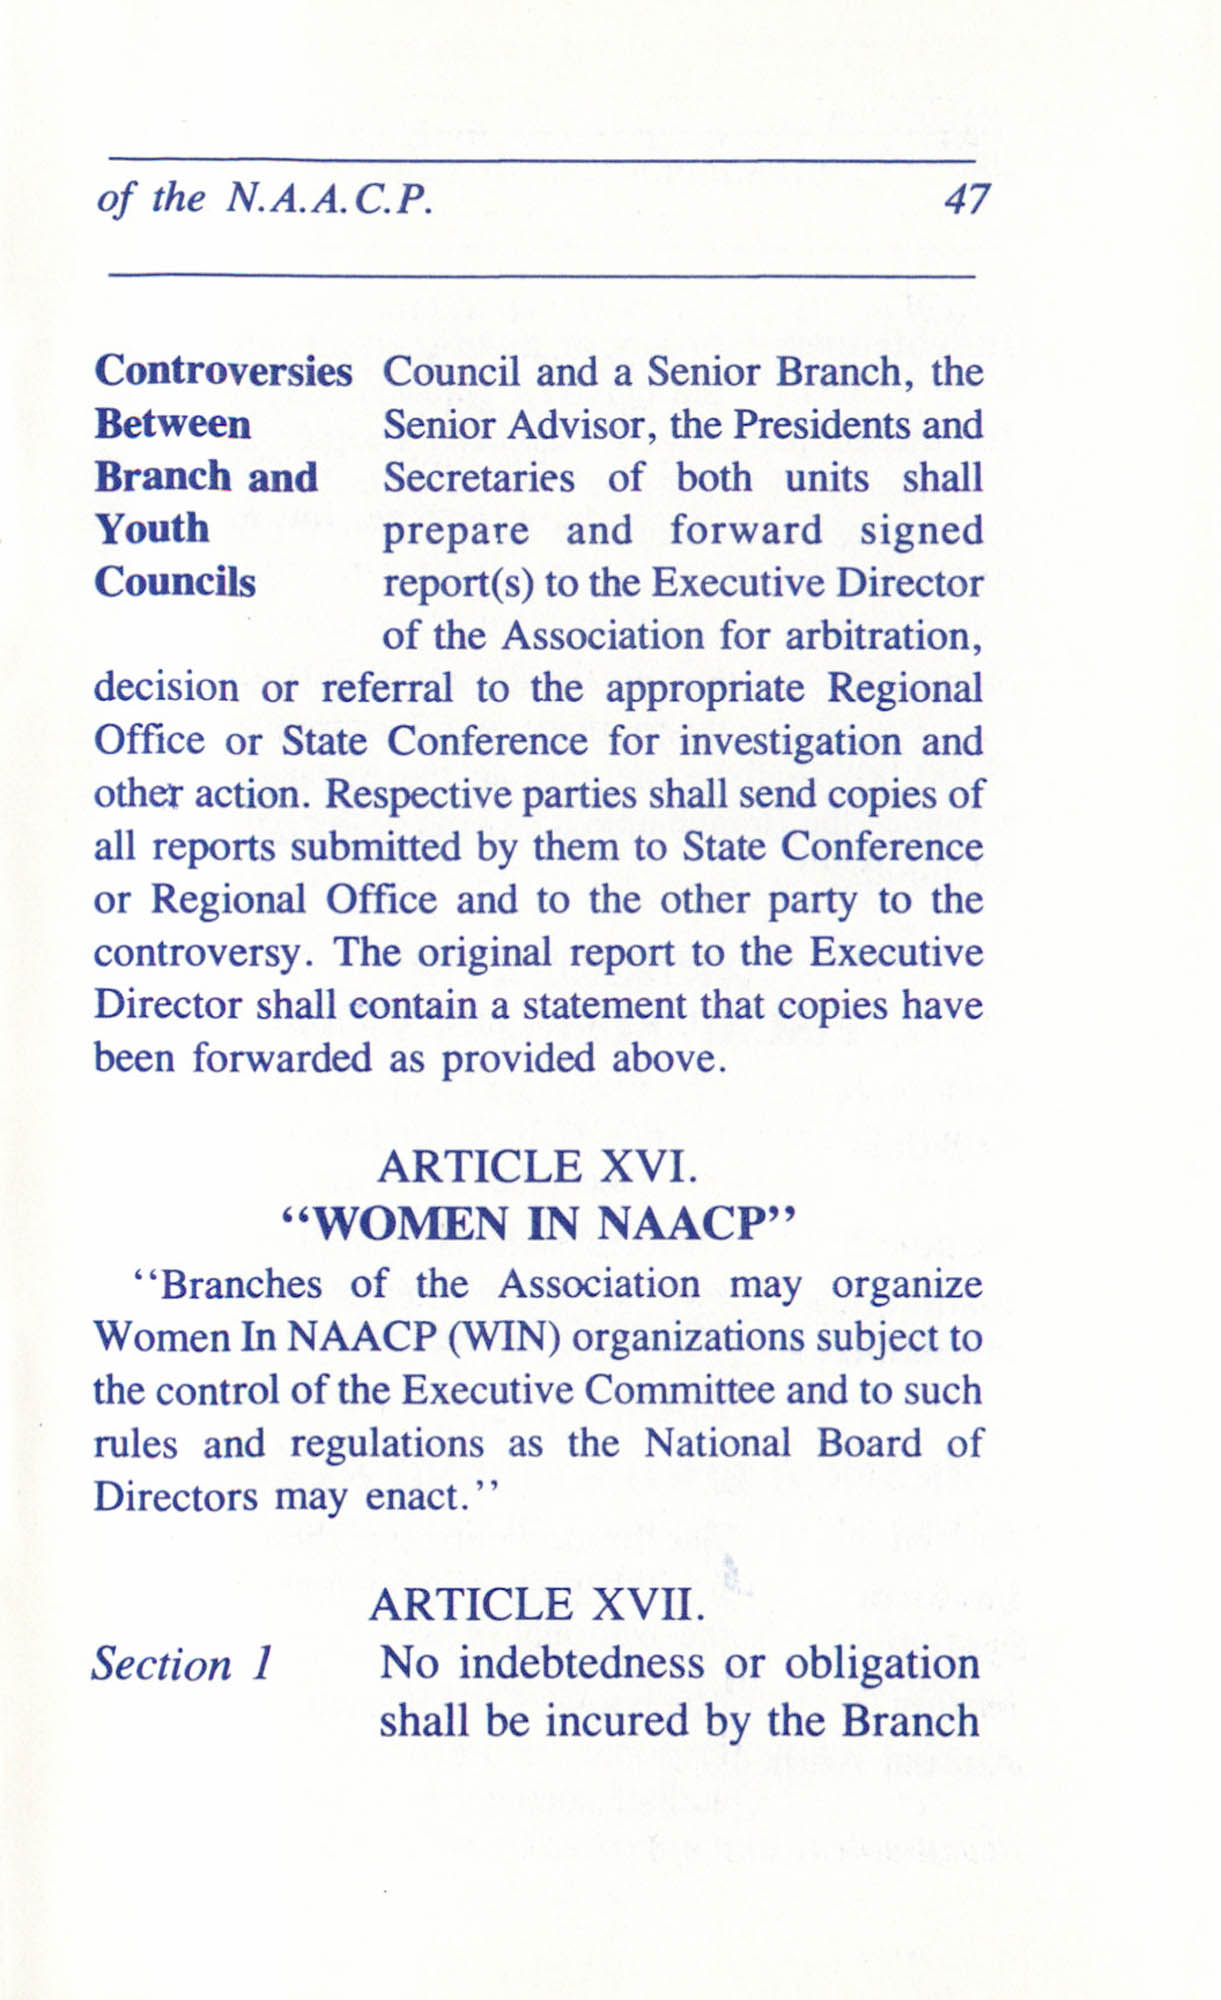 Constitution and By-Laws for Branches of the NAACP, June 1993, Page 47